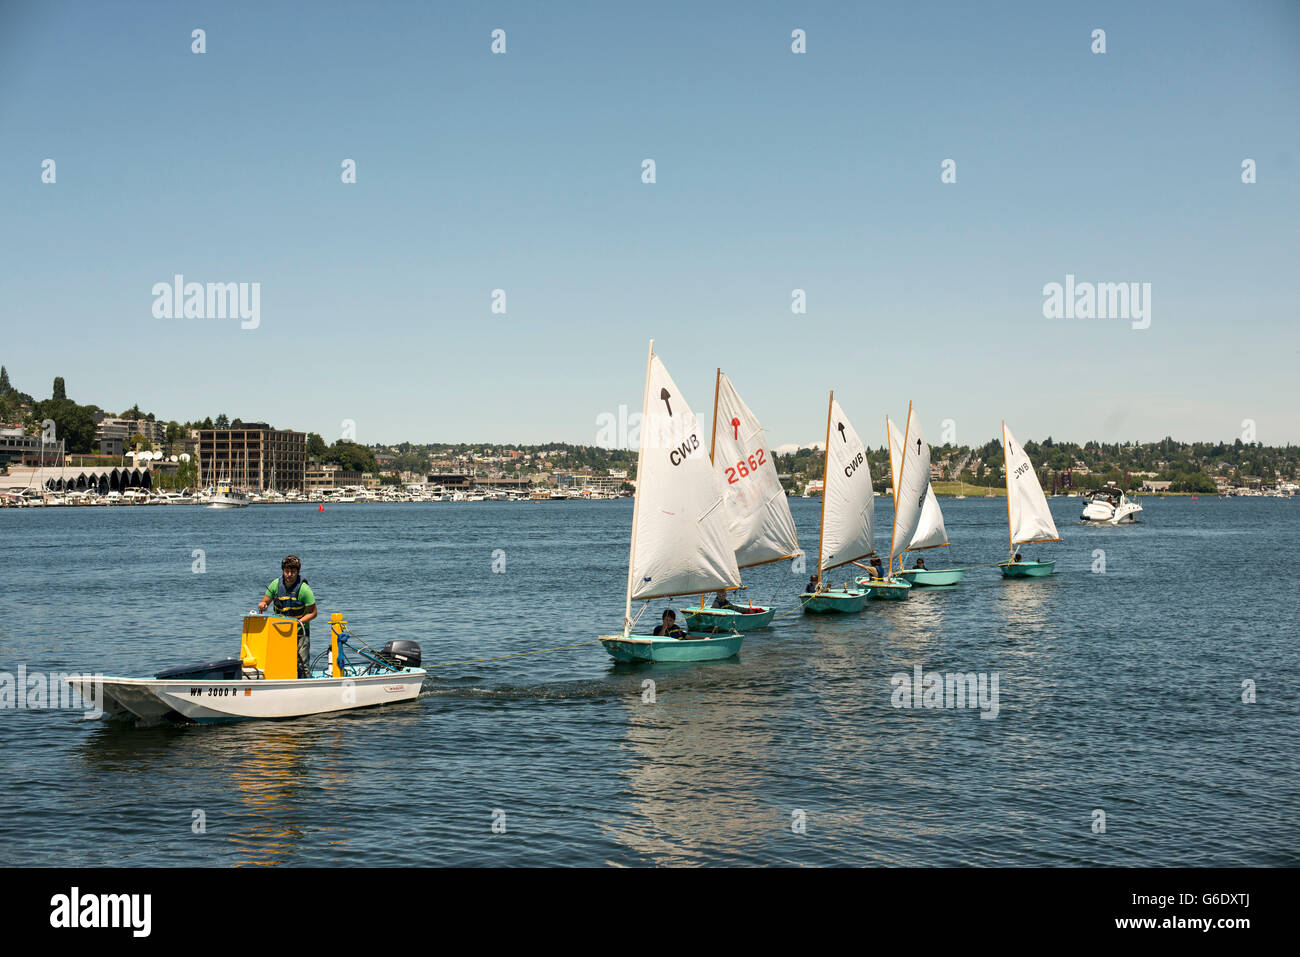 Children learn to sail in Lake Union in Seattle, Washington on June 7, 2014. - Stock Image